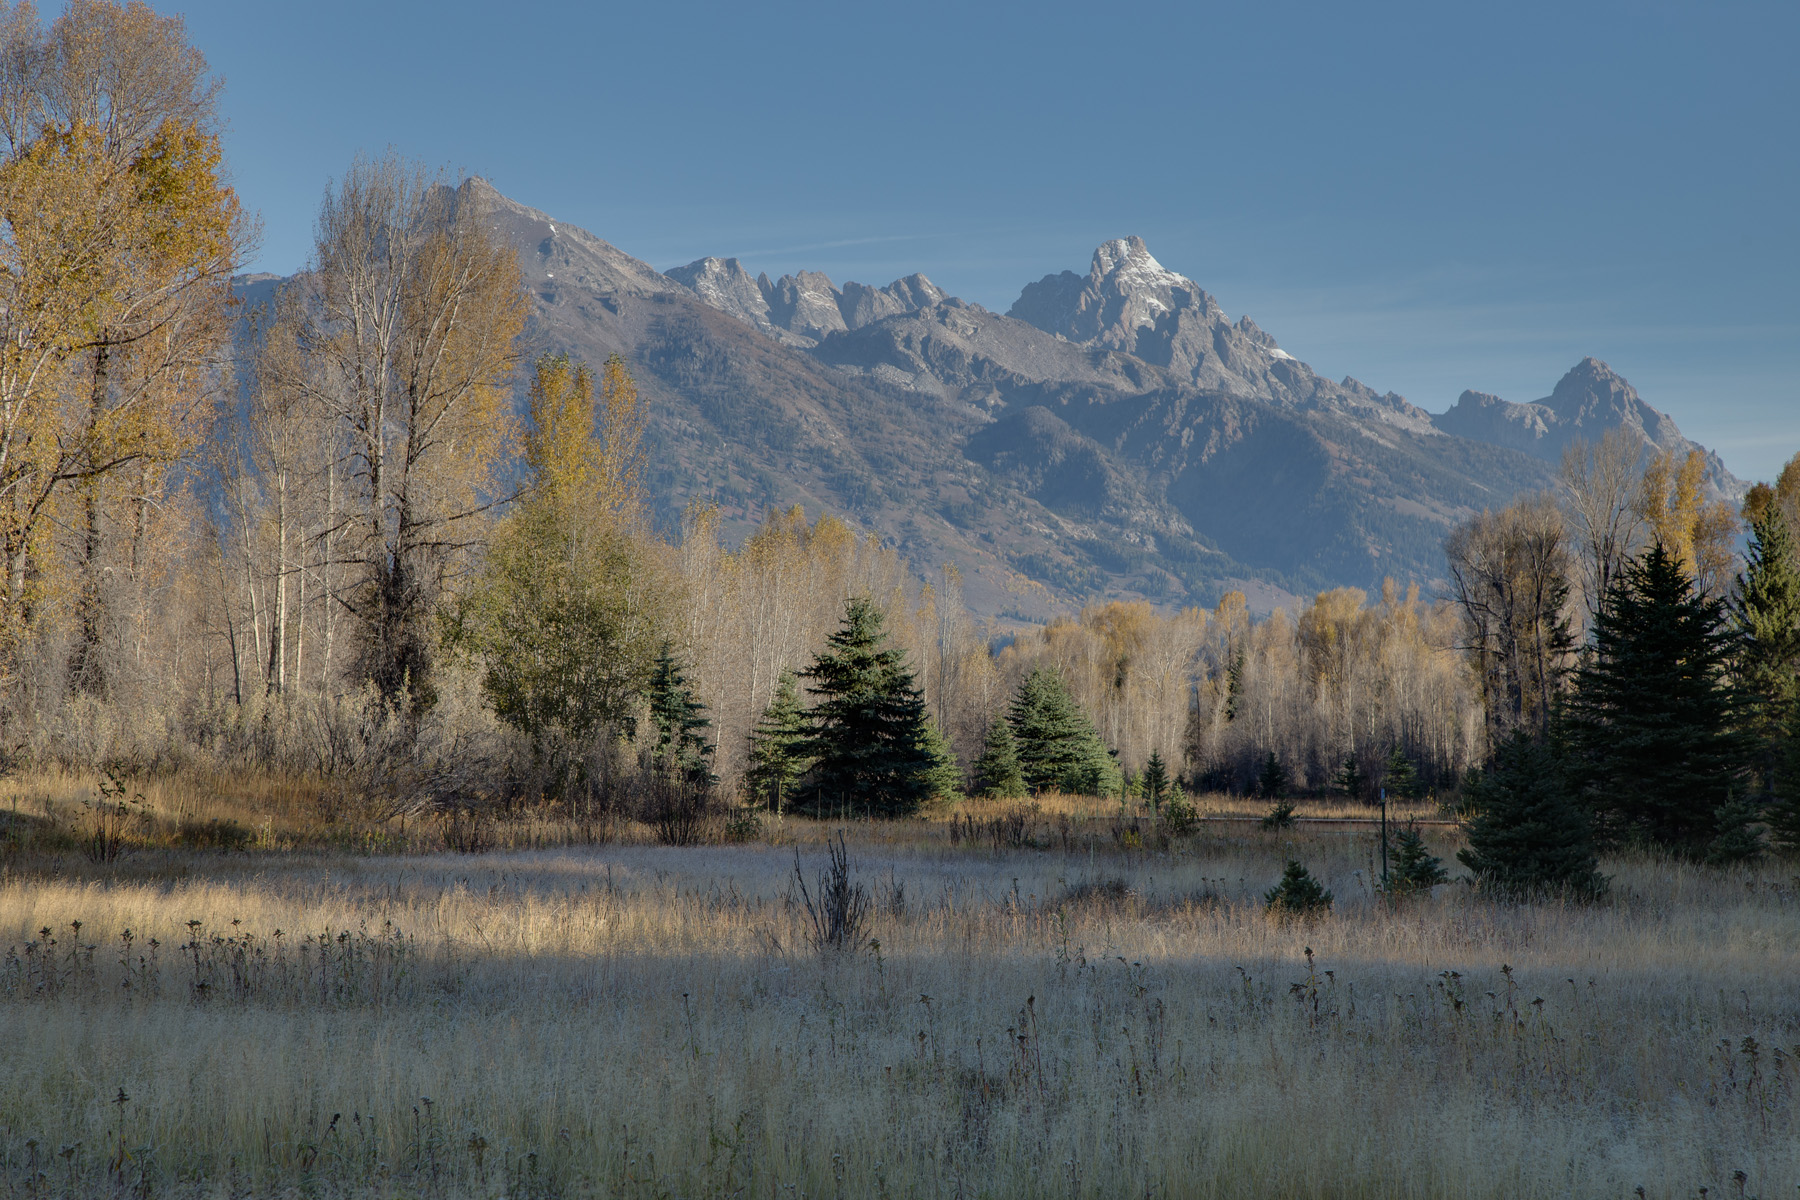 Property For Sale at 37 Private Acres on the Snake River